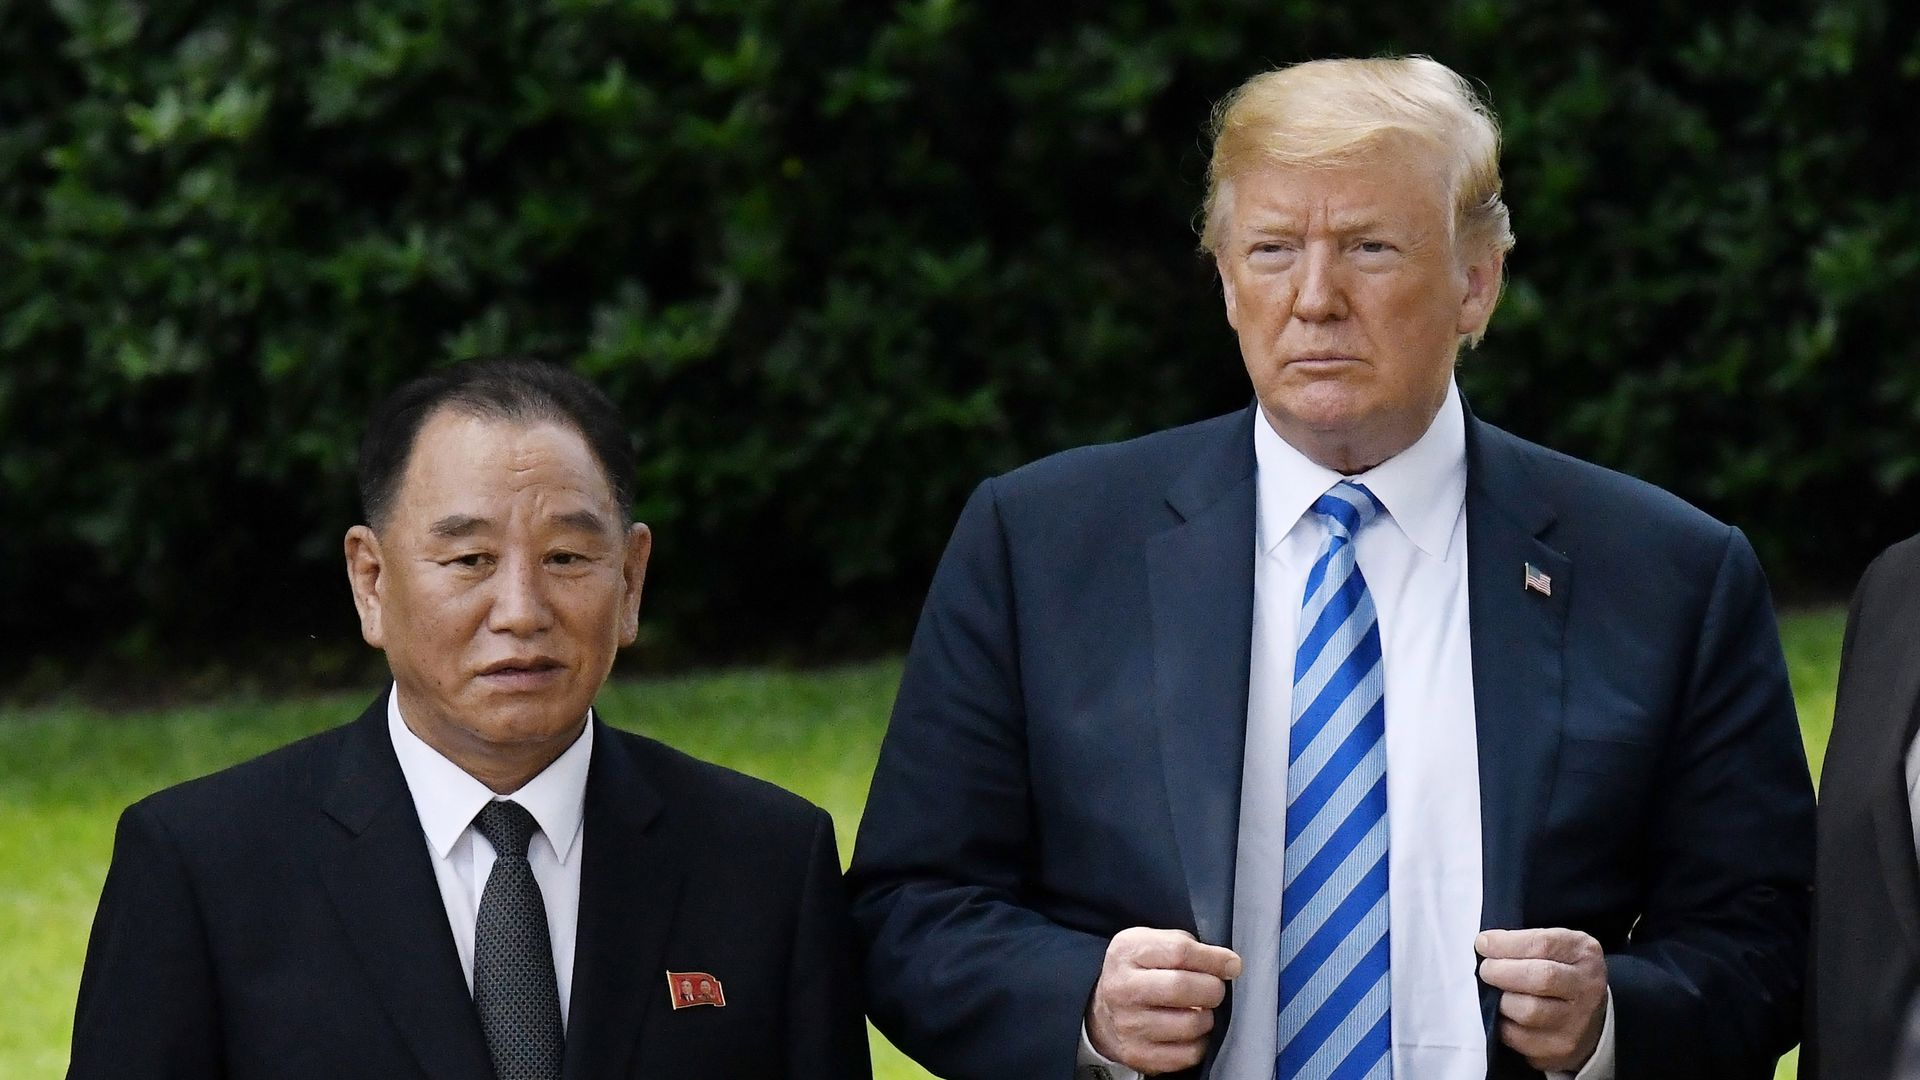 Trump and Kim Yong-chol.